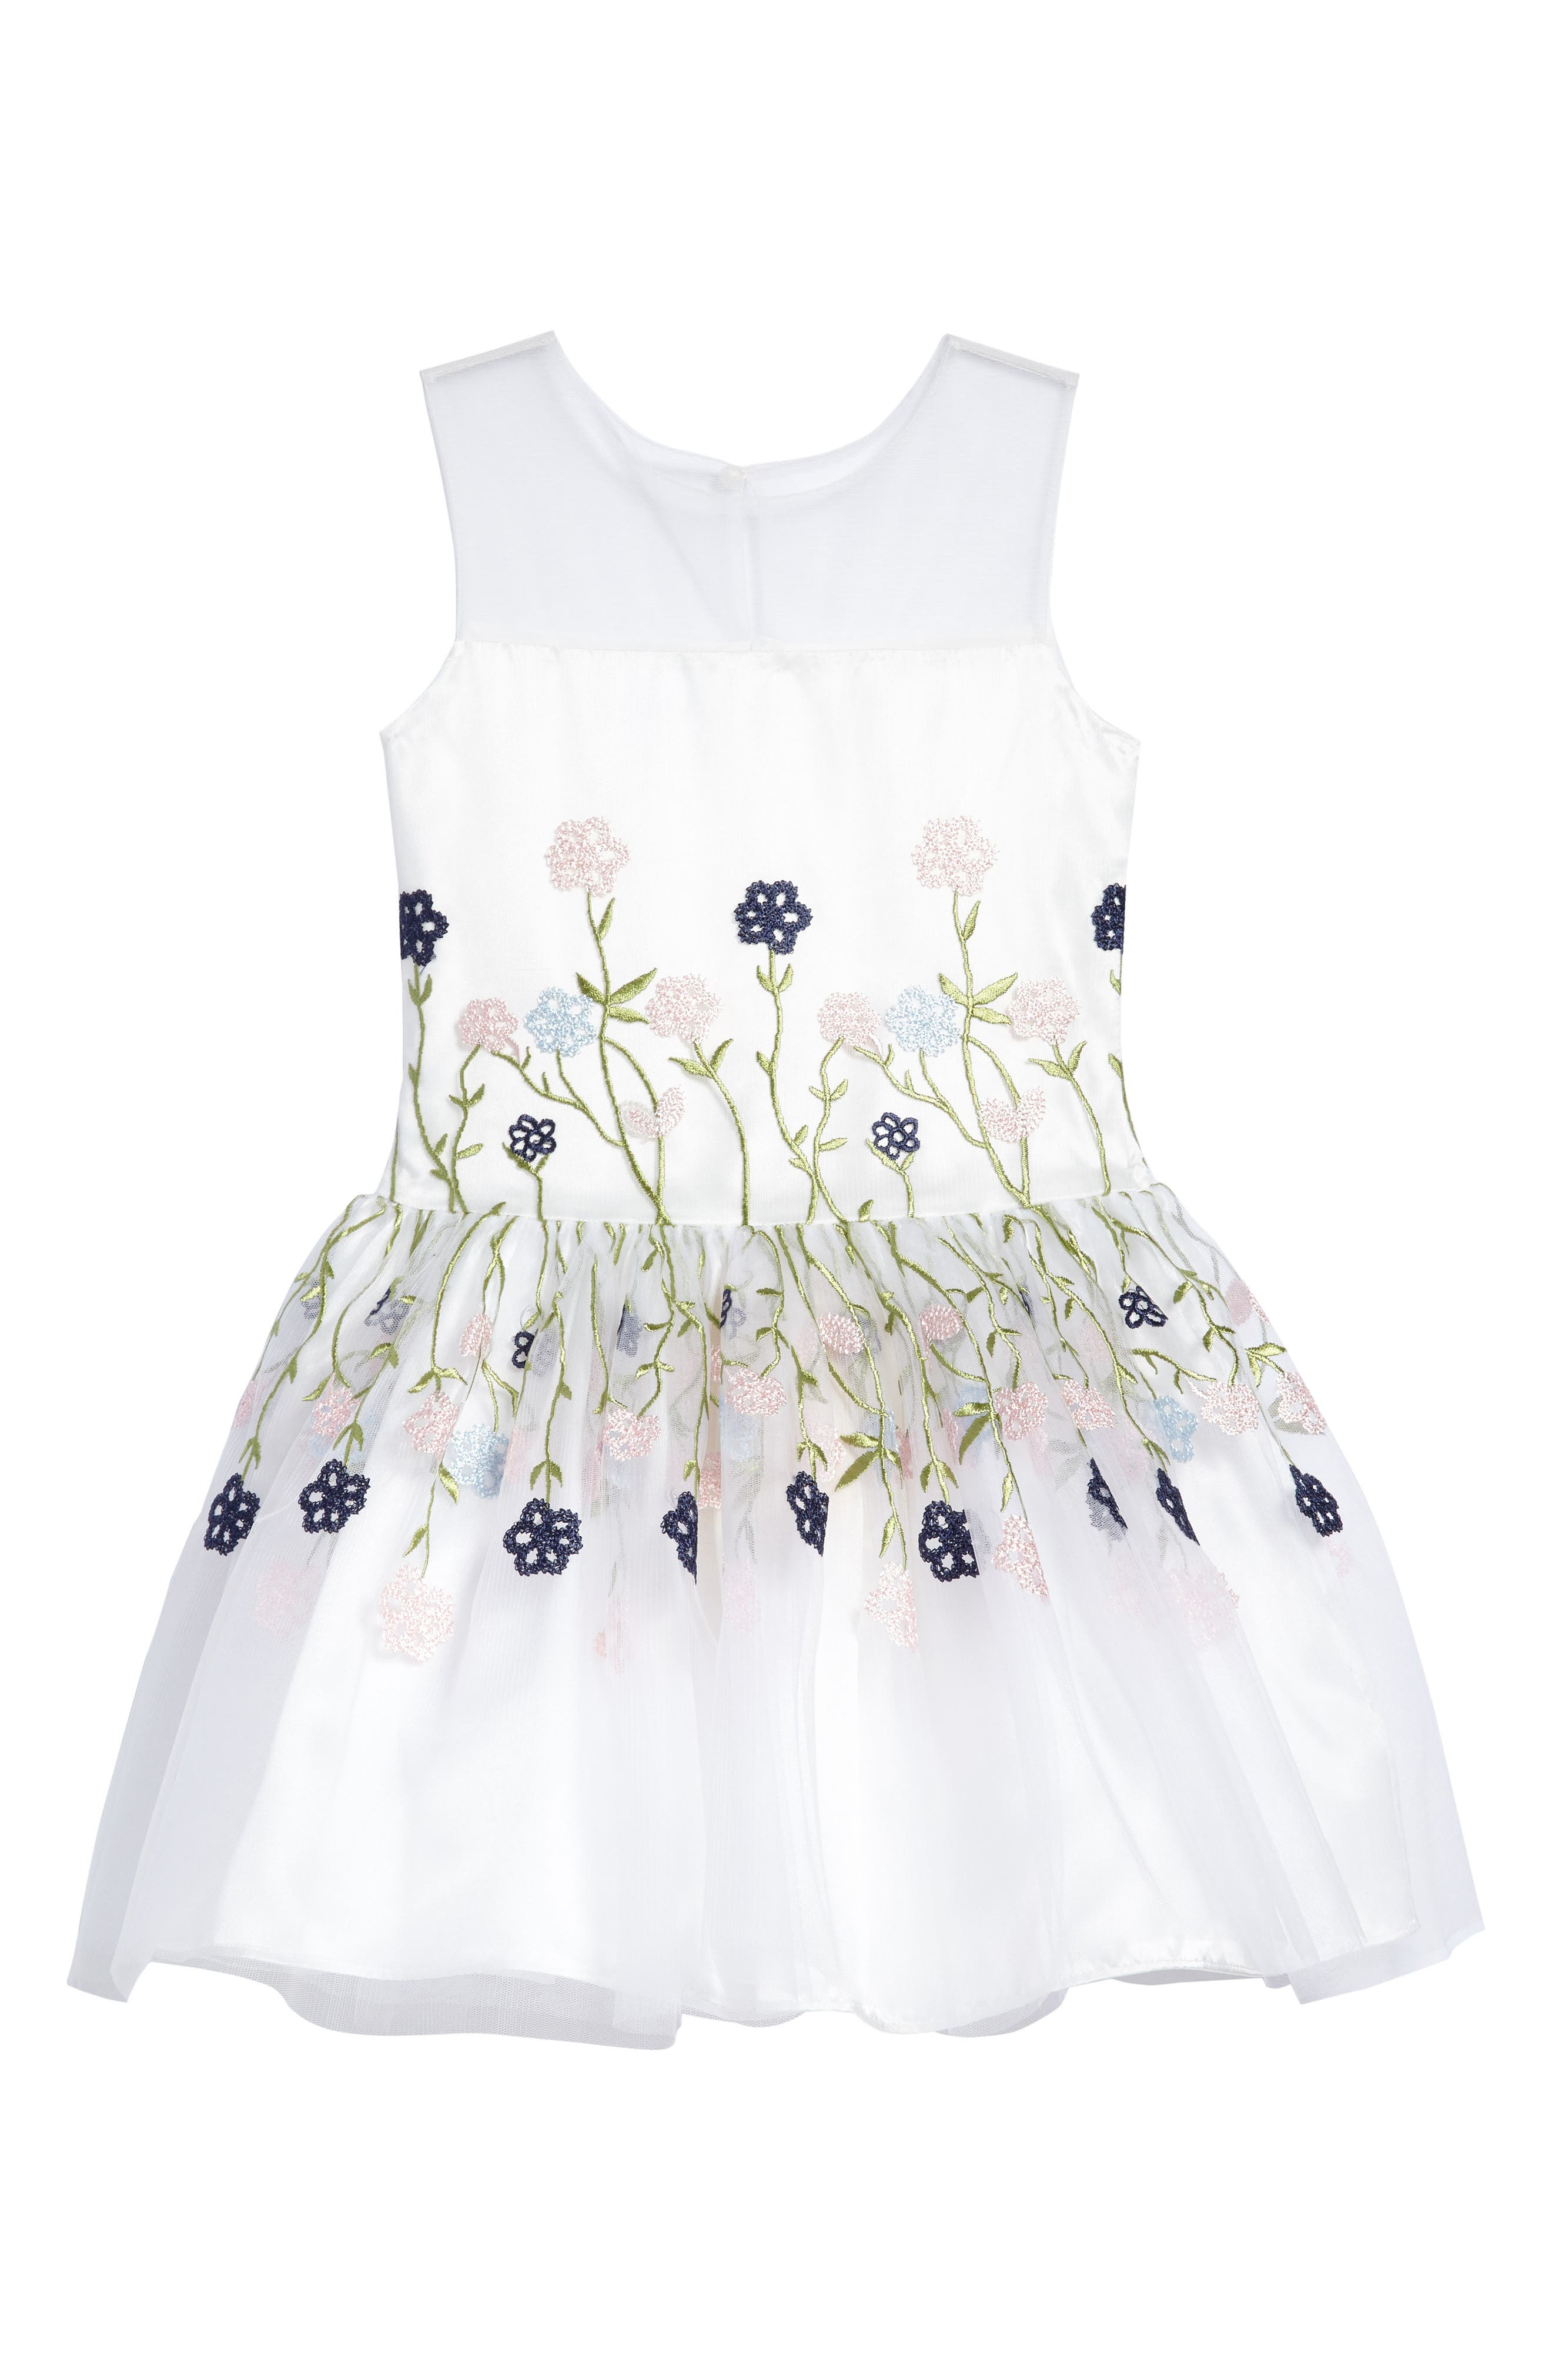 Floral Embroidered Dress,                         Main,                         color, 100